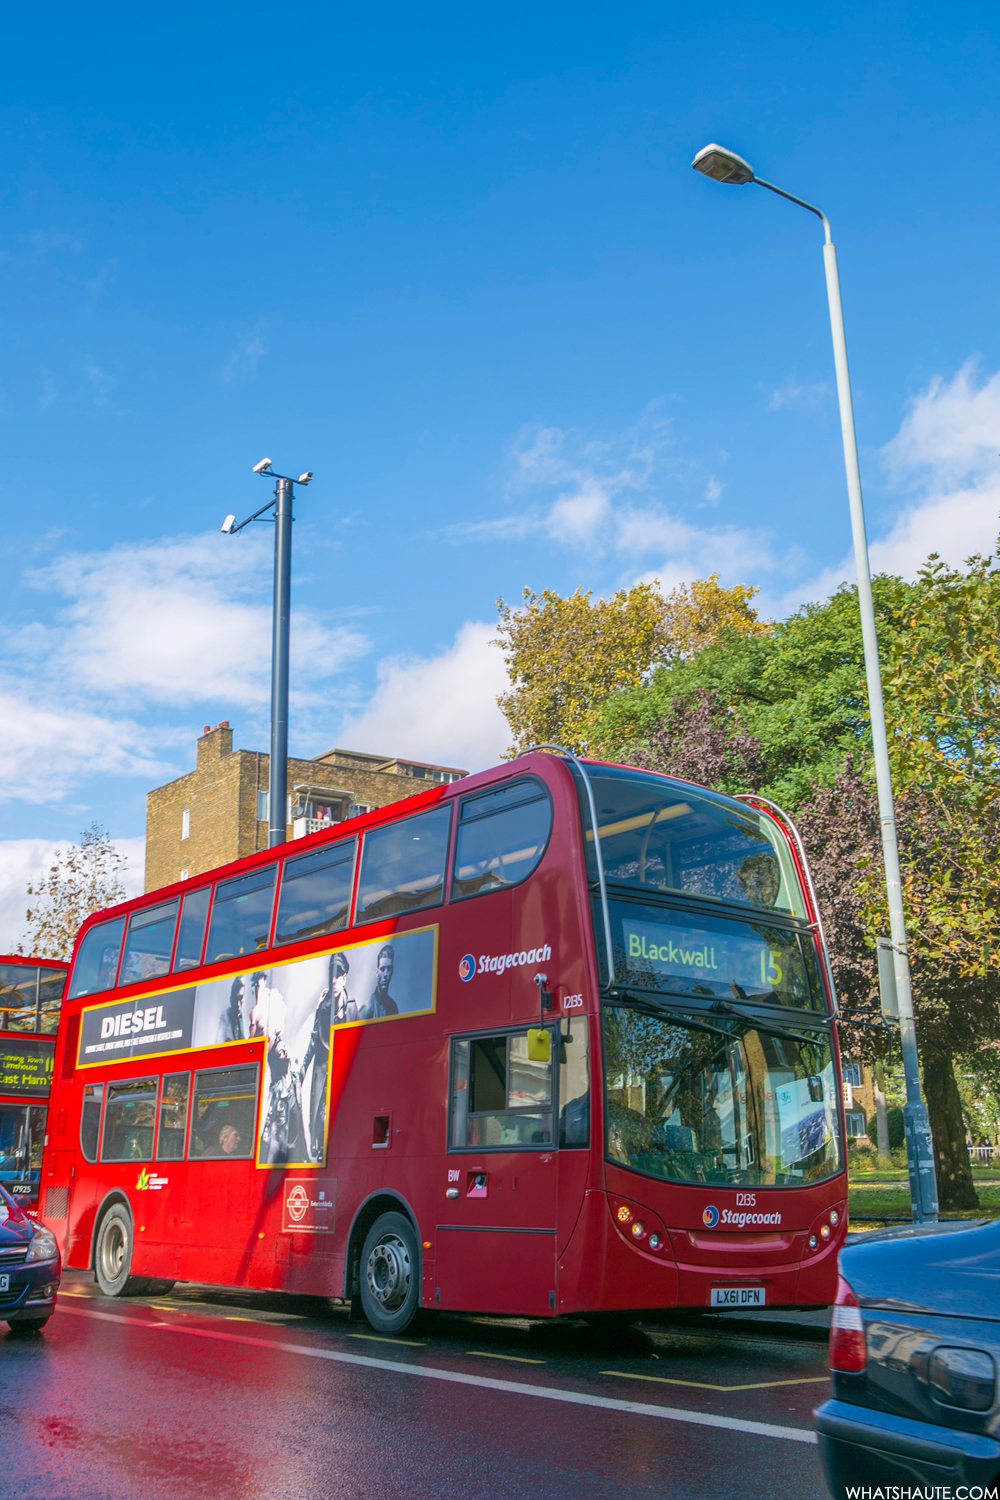 48 Hours in London, Red double decker bus - London, England, What's Haute in the World